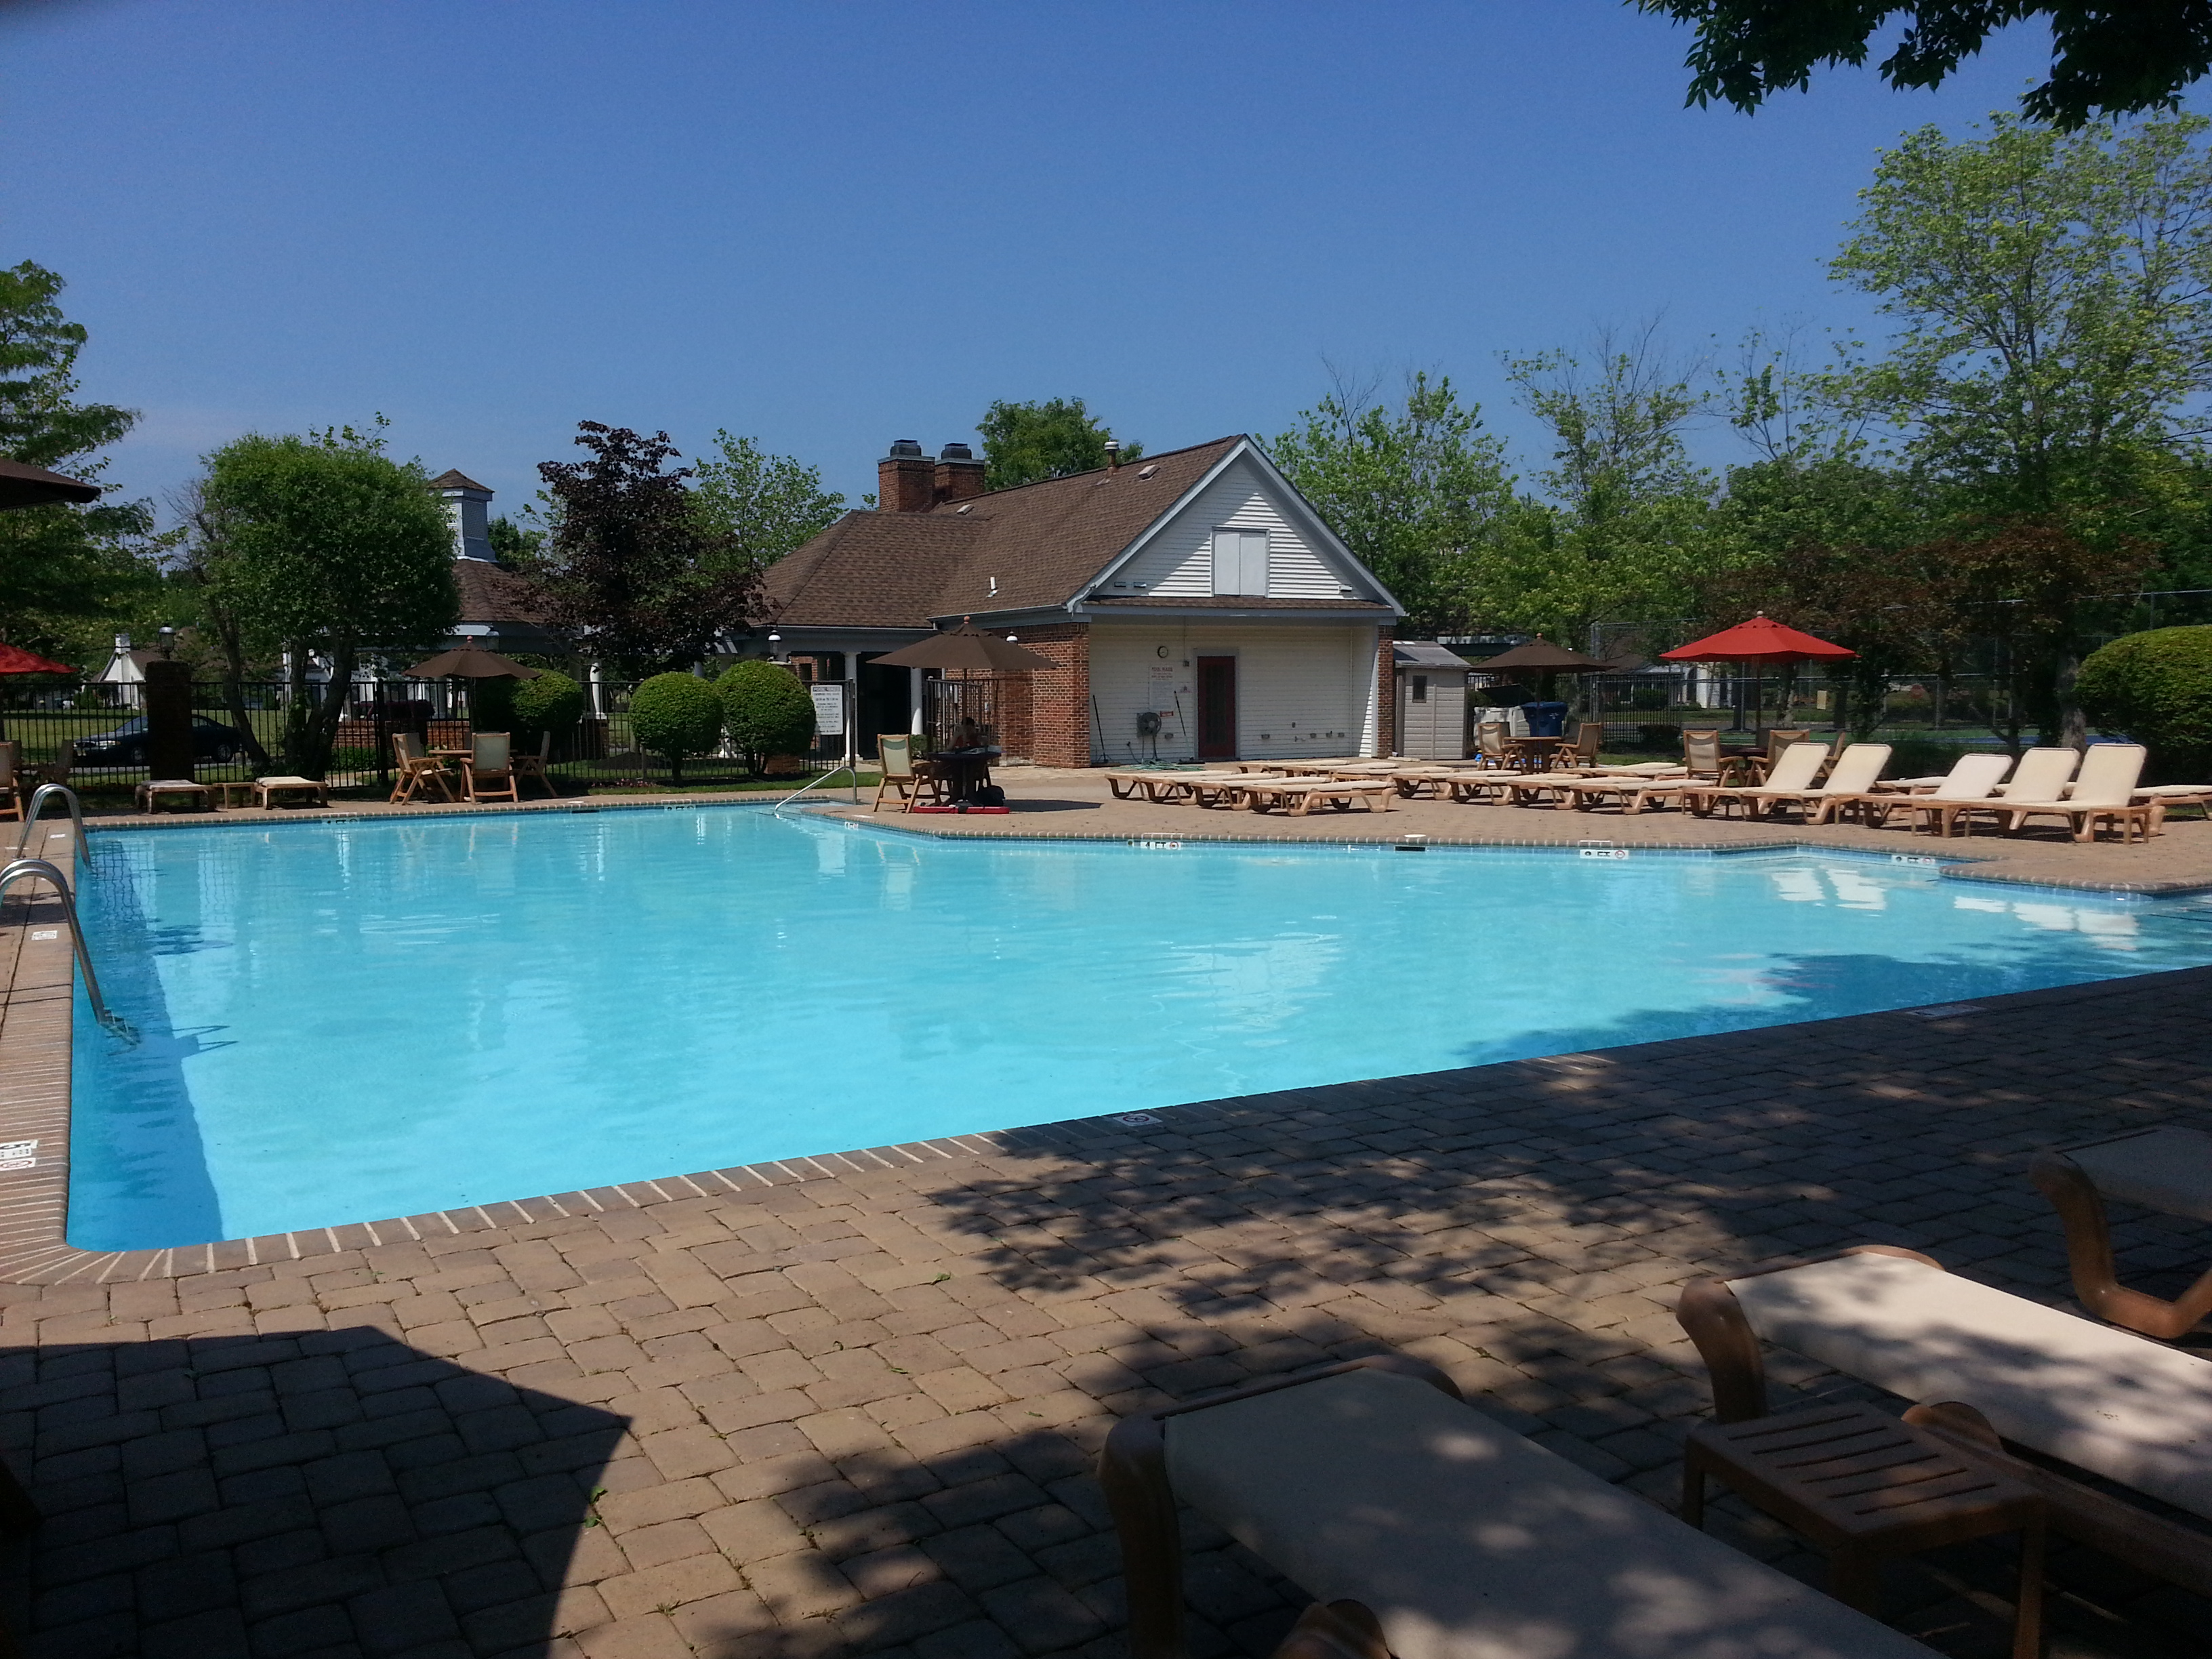 The Manor at Wayside in Ocean has a large community pool.